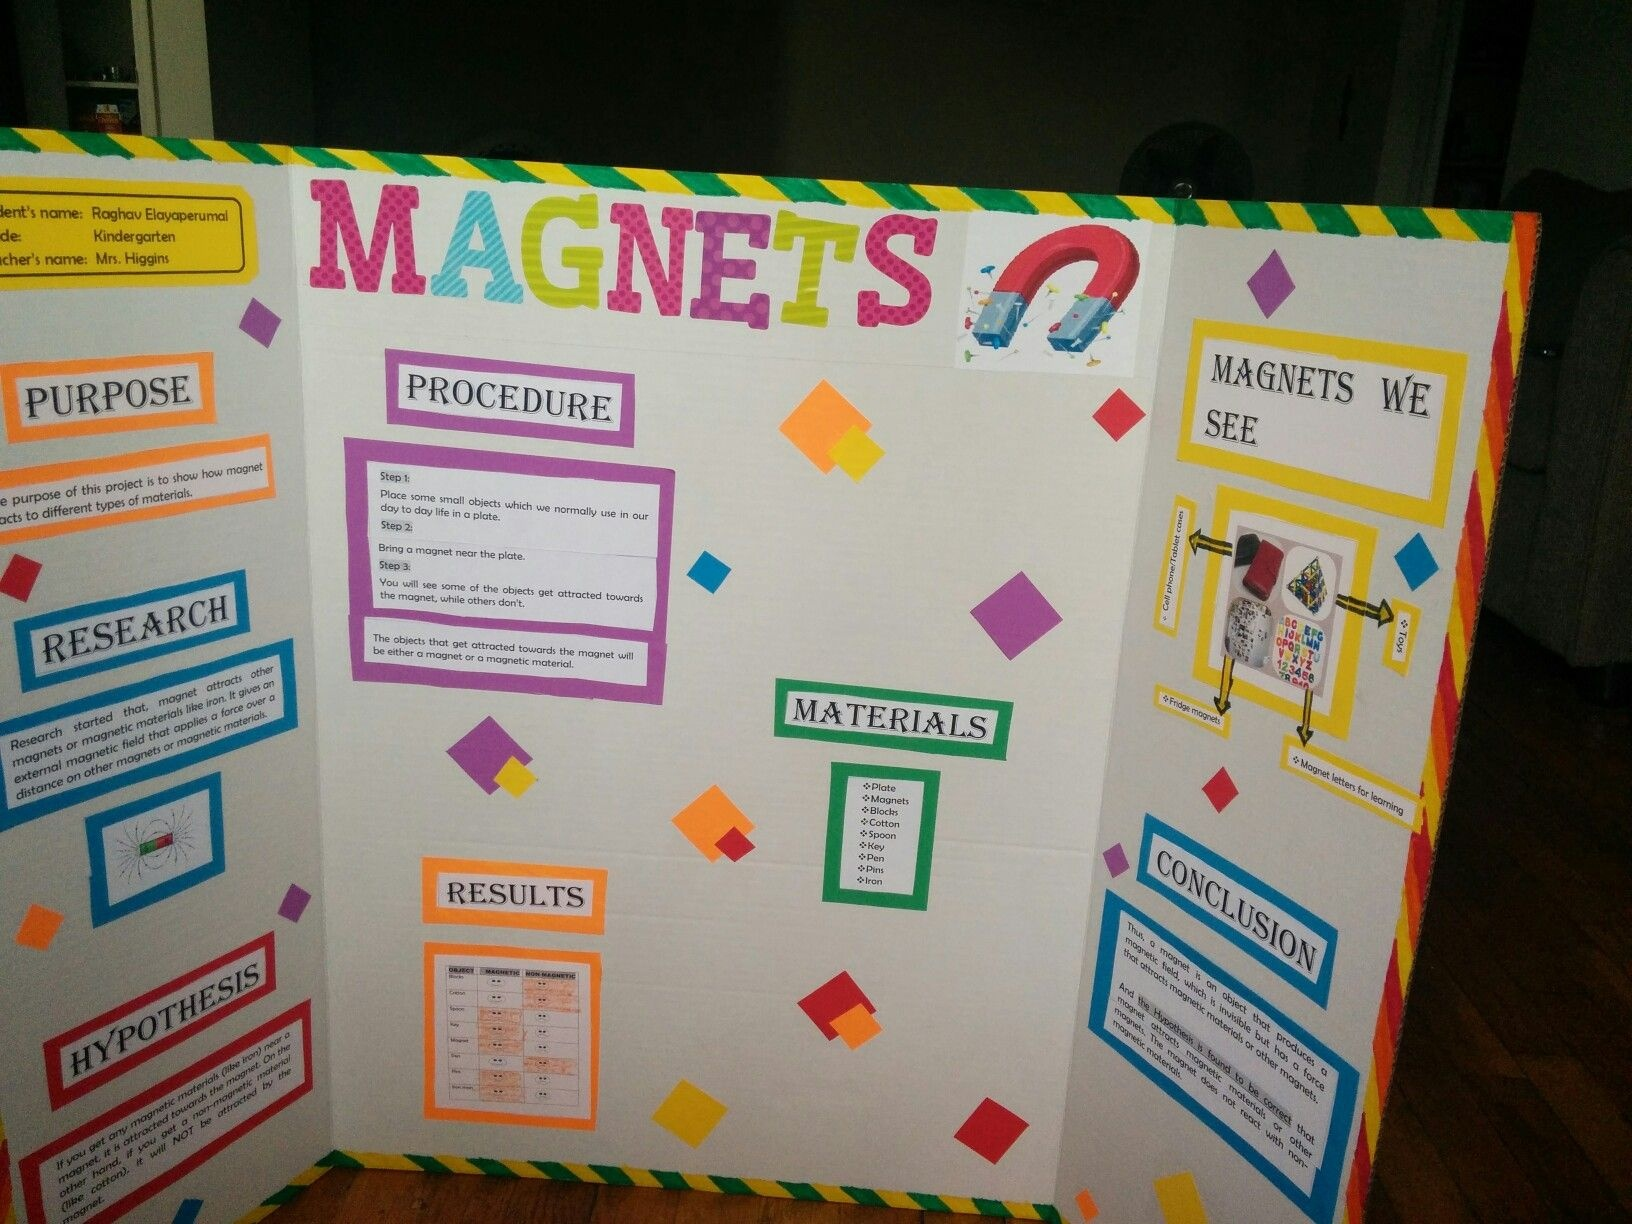 Science Fair Project On Magnets | Science Fair Ideas For - Free Printable Science Fair Project Board Labels